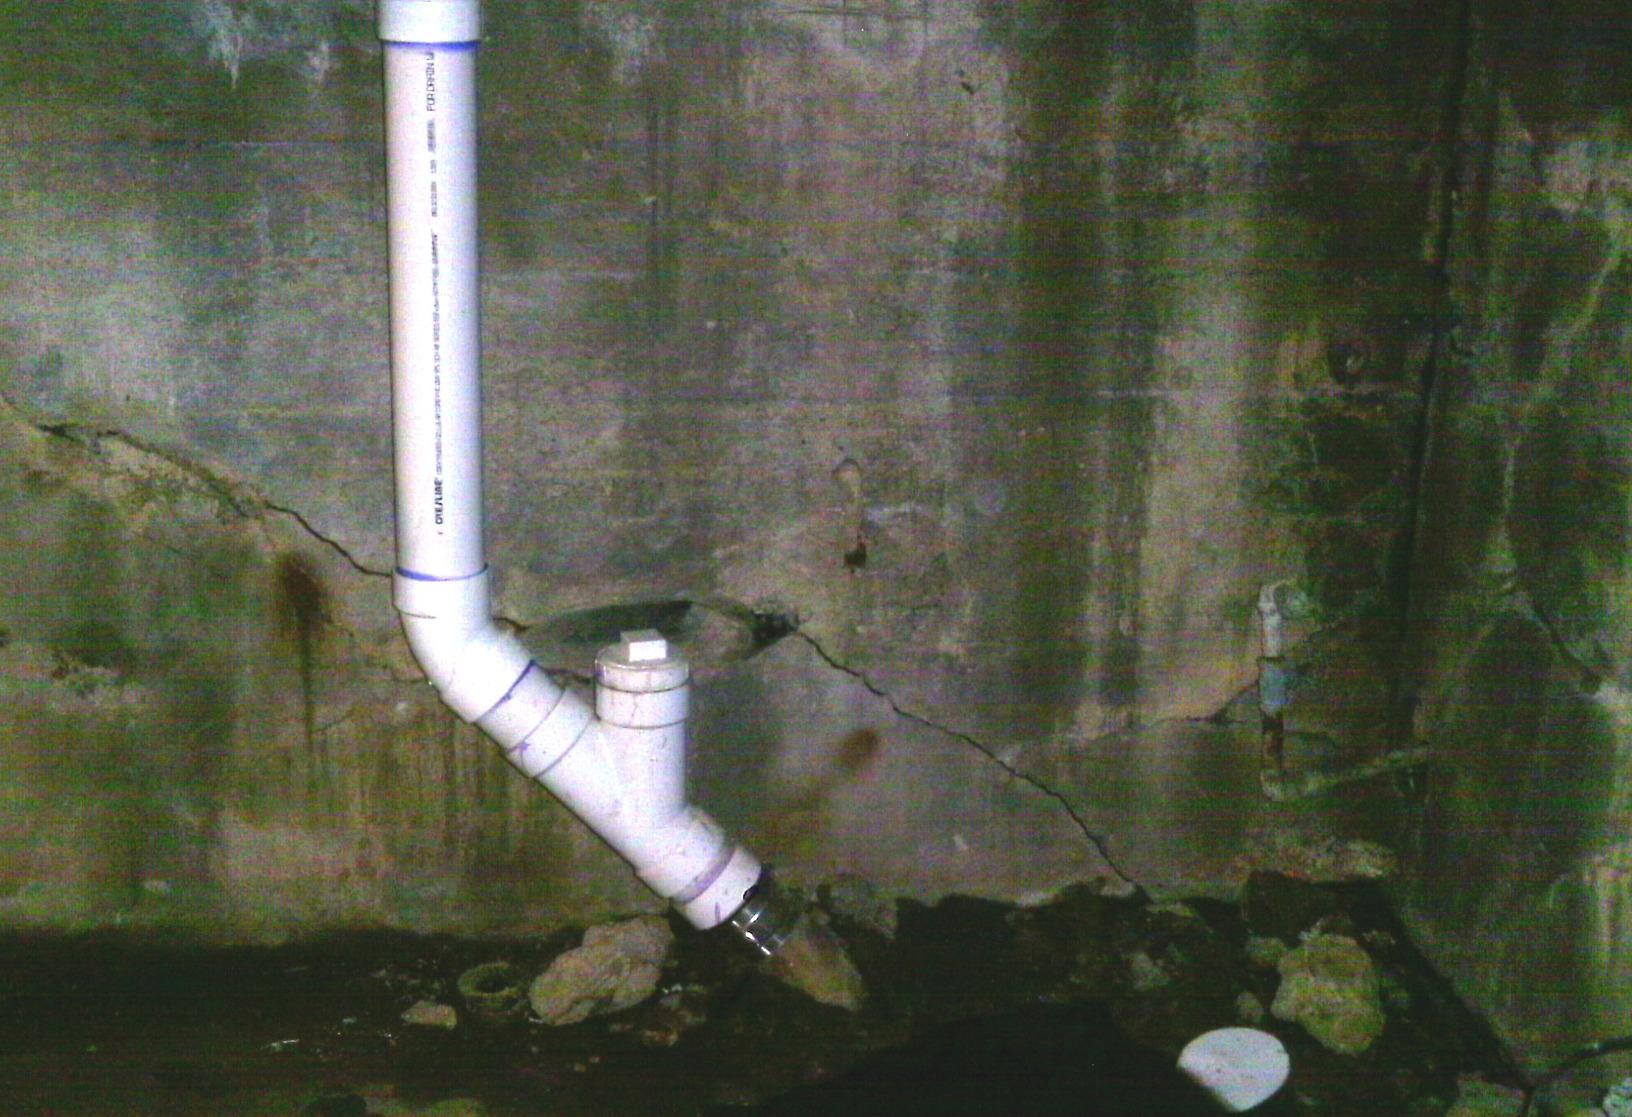 Leaky pipes are one of the many ways water can seep into a crawl space making it likely to smell and rot the organic material within the crawl space.